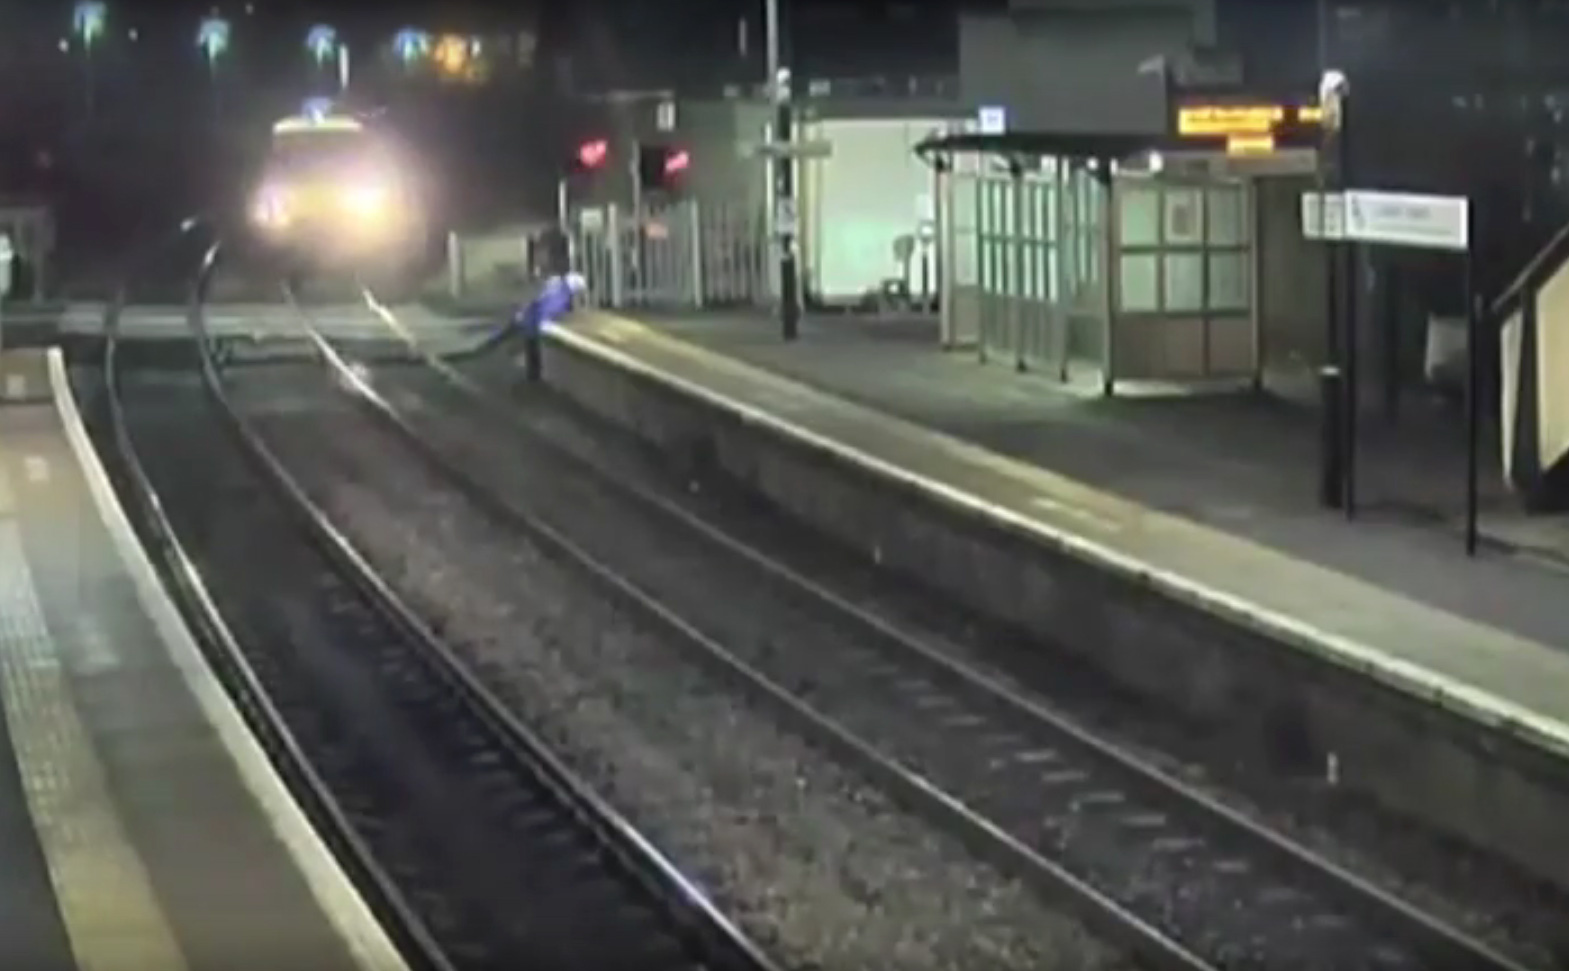 An average of one person encroaches on the tracks every hour (British Transport Police/PA Wire)